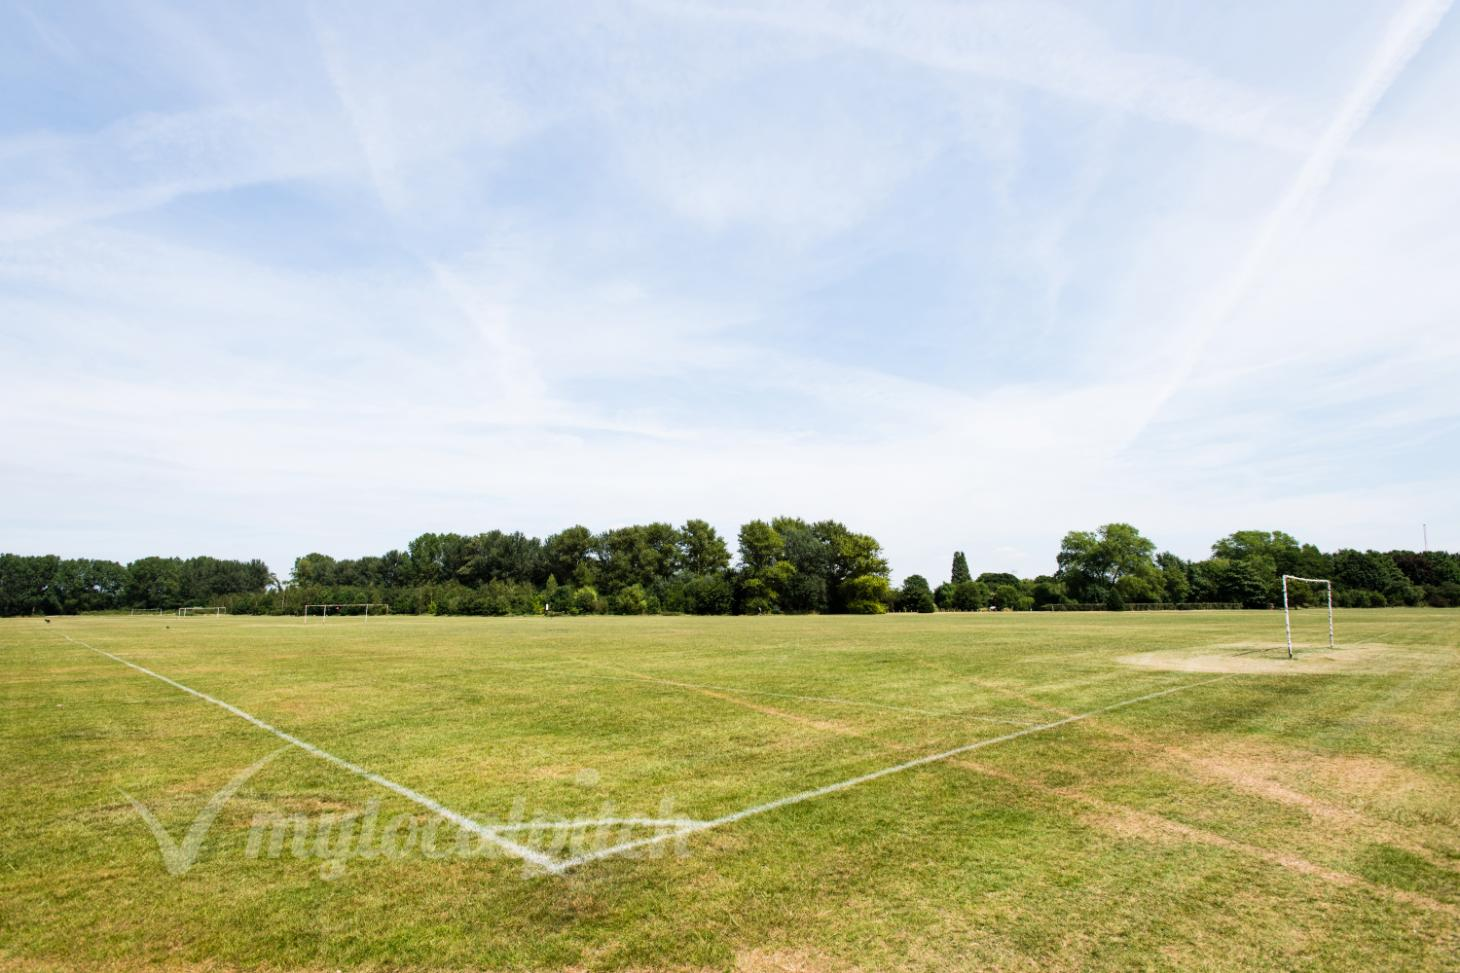 Hackney Marshes 11 a side | Grass football pitch